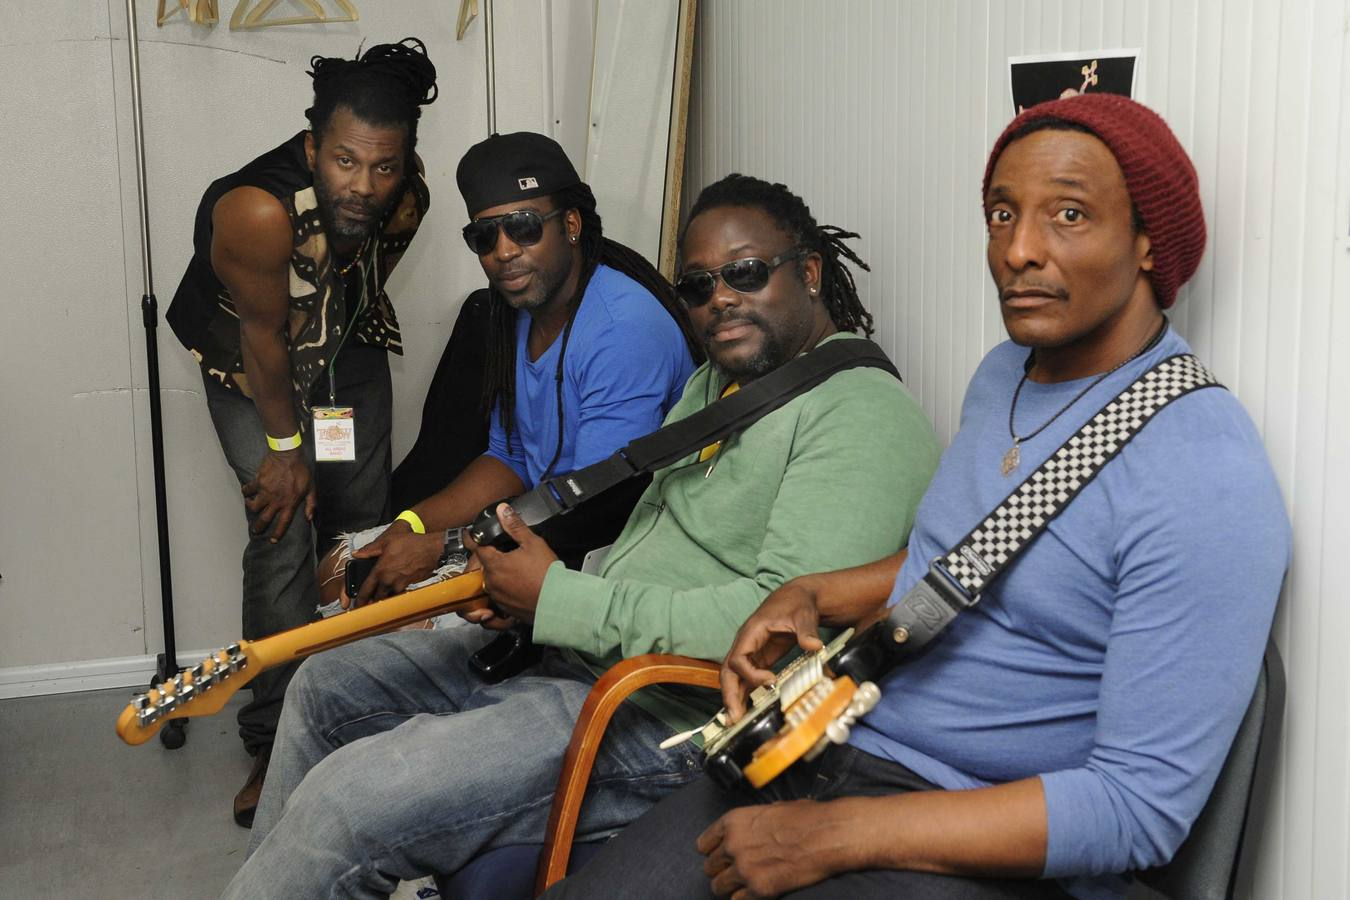 The Wailers regresa a Tenerife en el previo del Feeling Festival